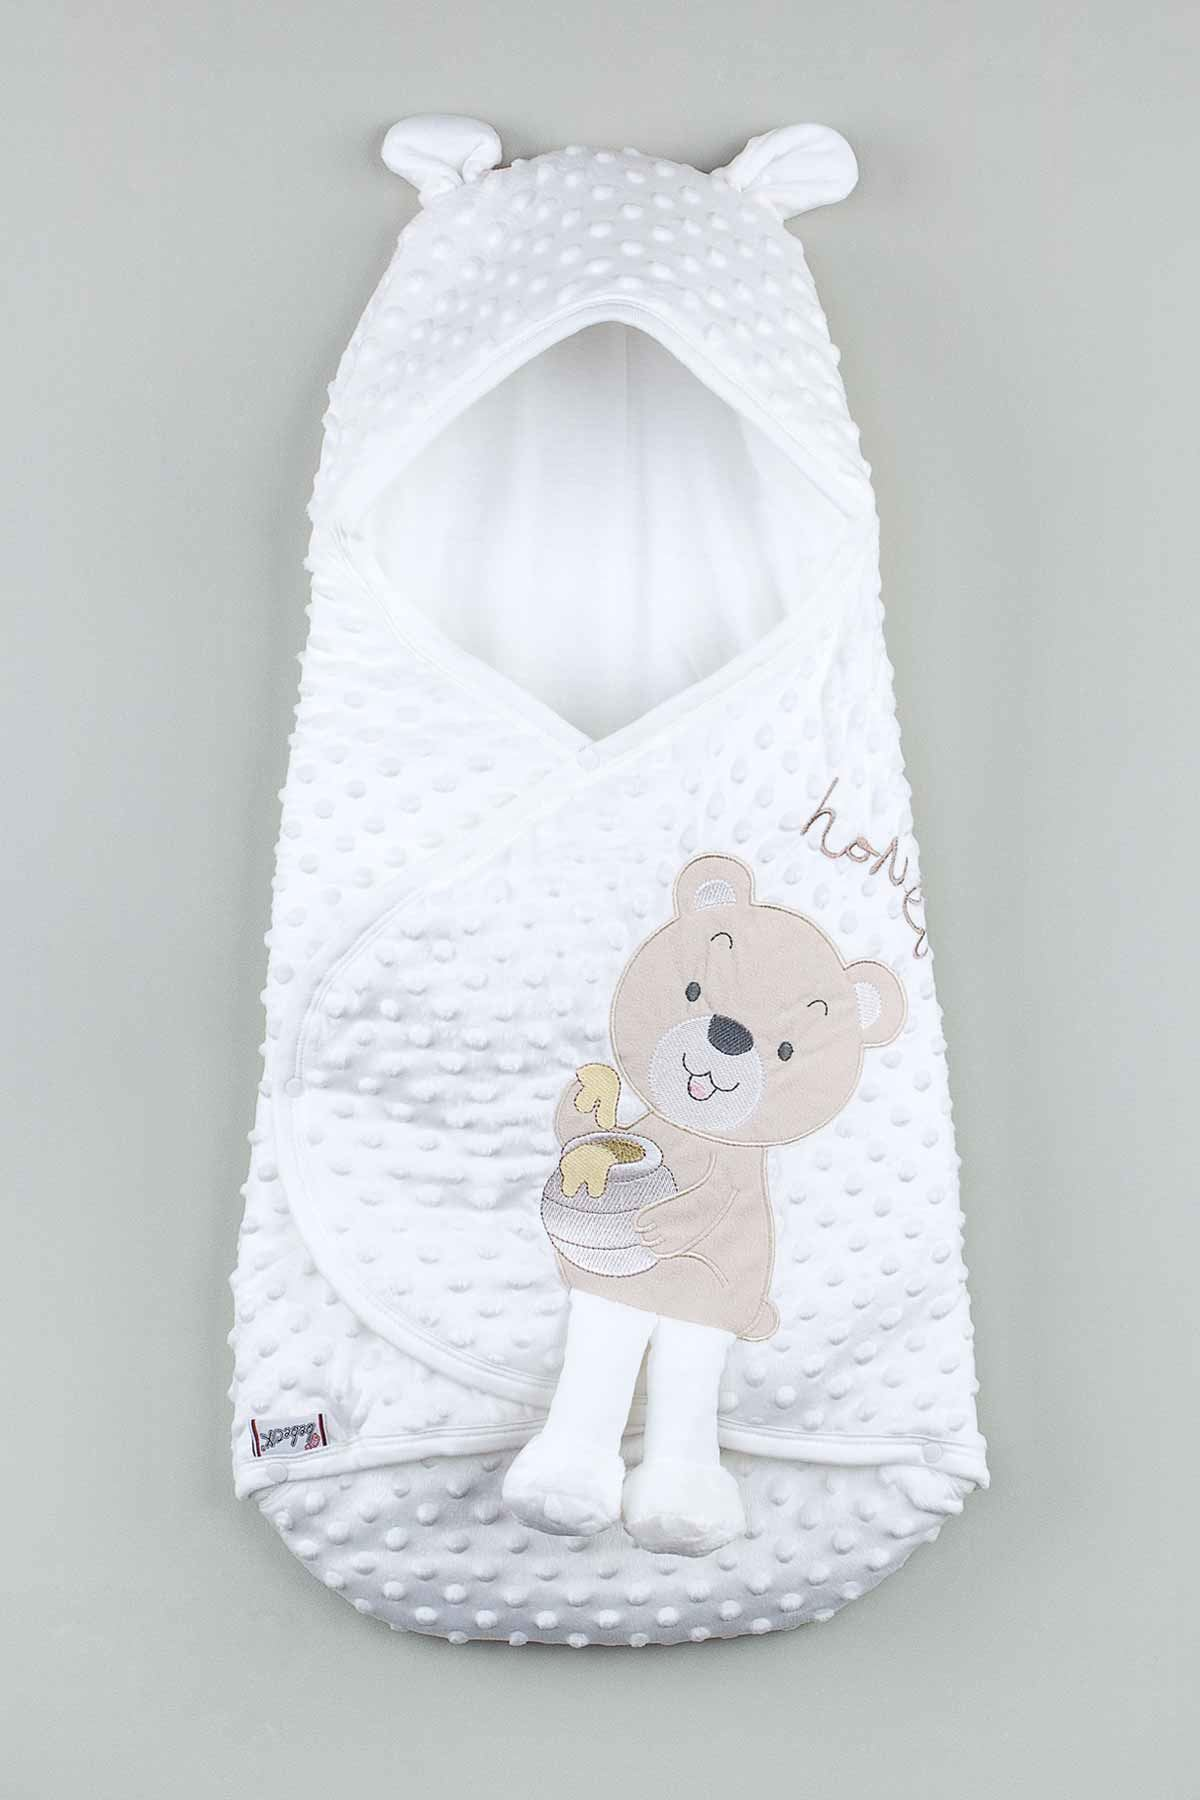 White Blue Pink baby girl baby boy of sids chickpea type cotton fabric soft teddy bear vile sweaty fabric stylish babies model